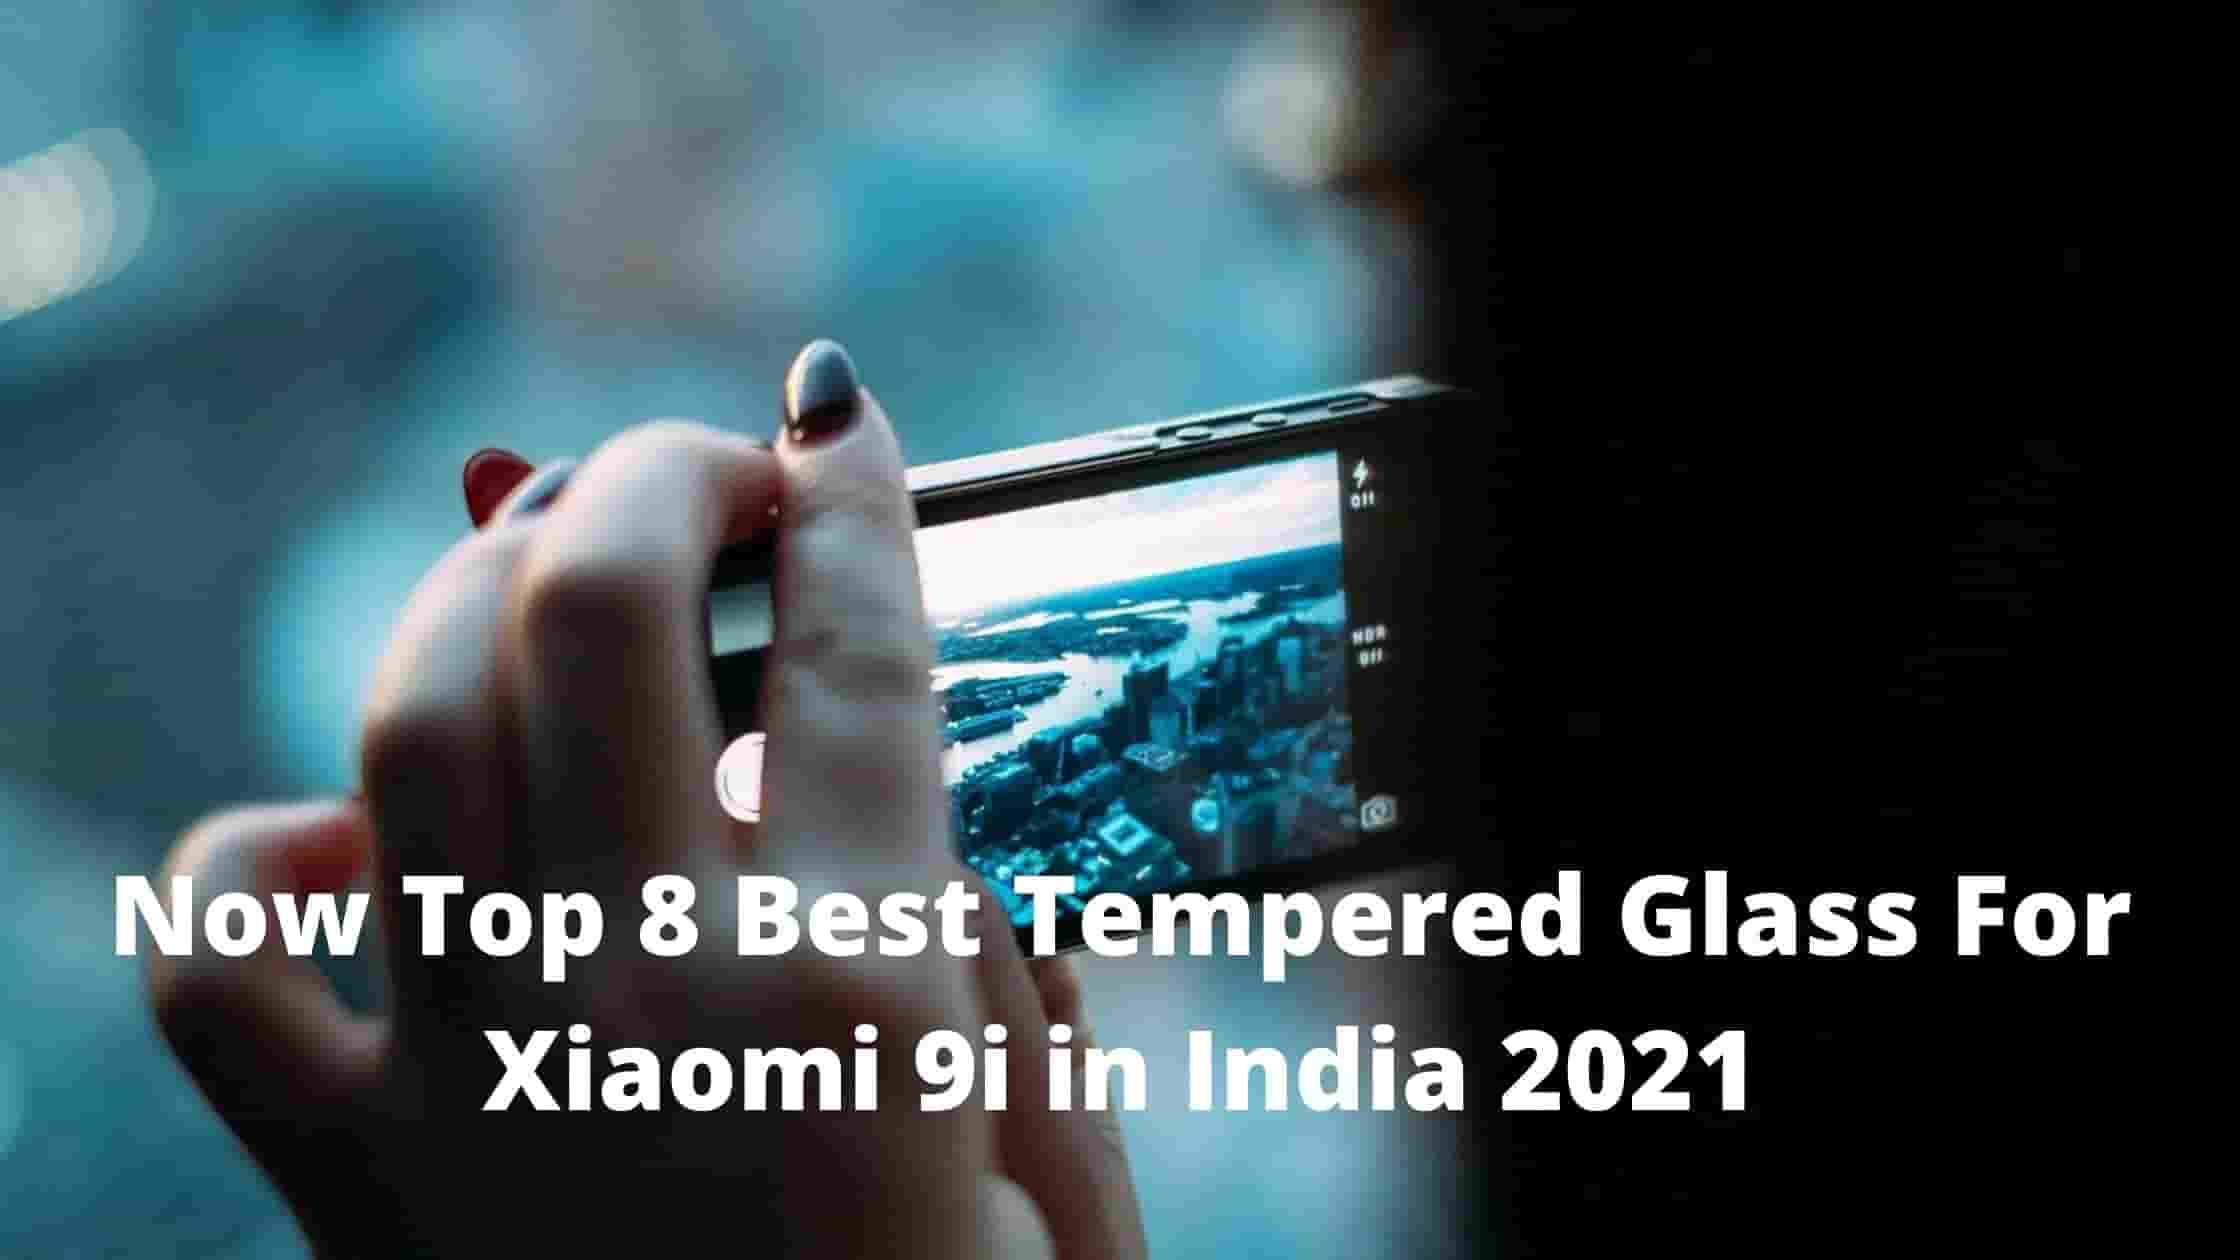 Now Top 8 Best Tempered Glass For Xiaomi 9i in India 2021 [Bengali]